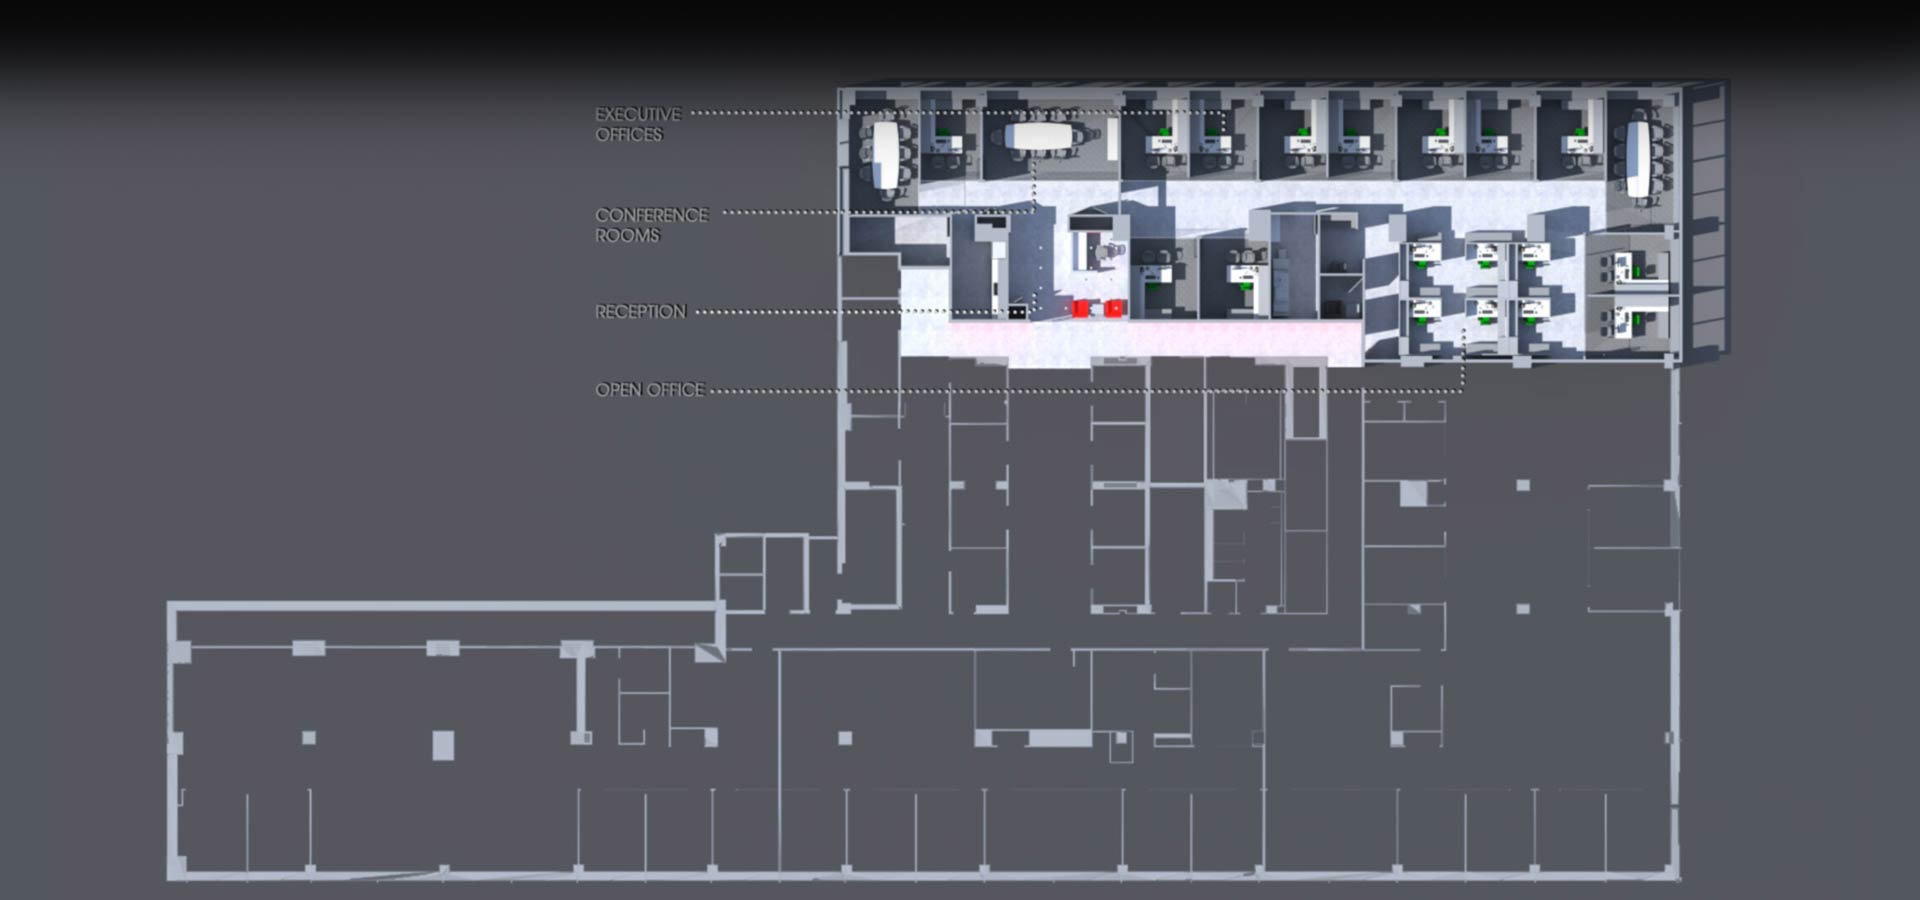 blueprint of architectural plans of nyc nintendo office designed and architected by kohn architecture nyc